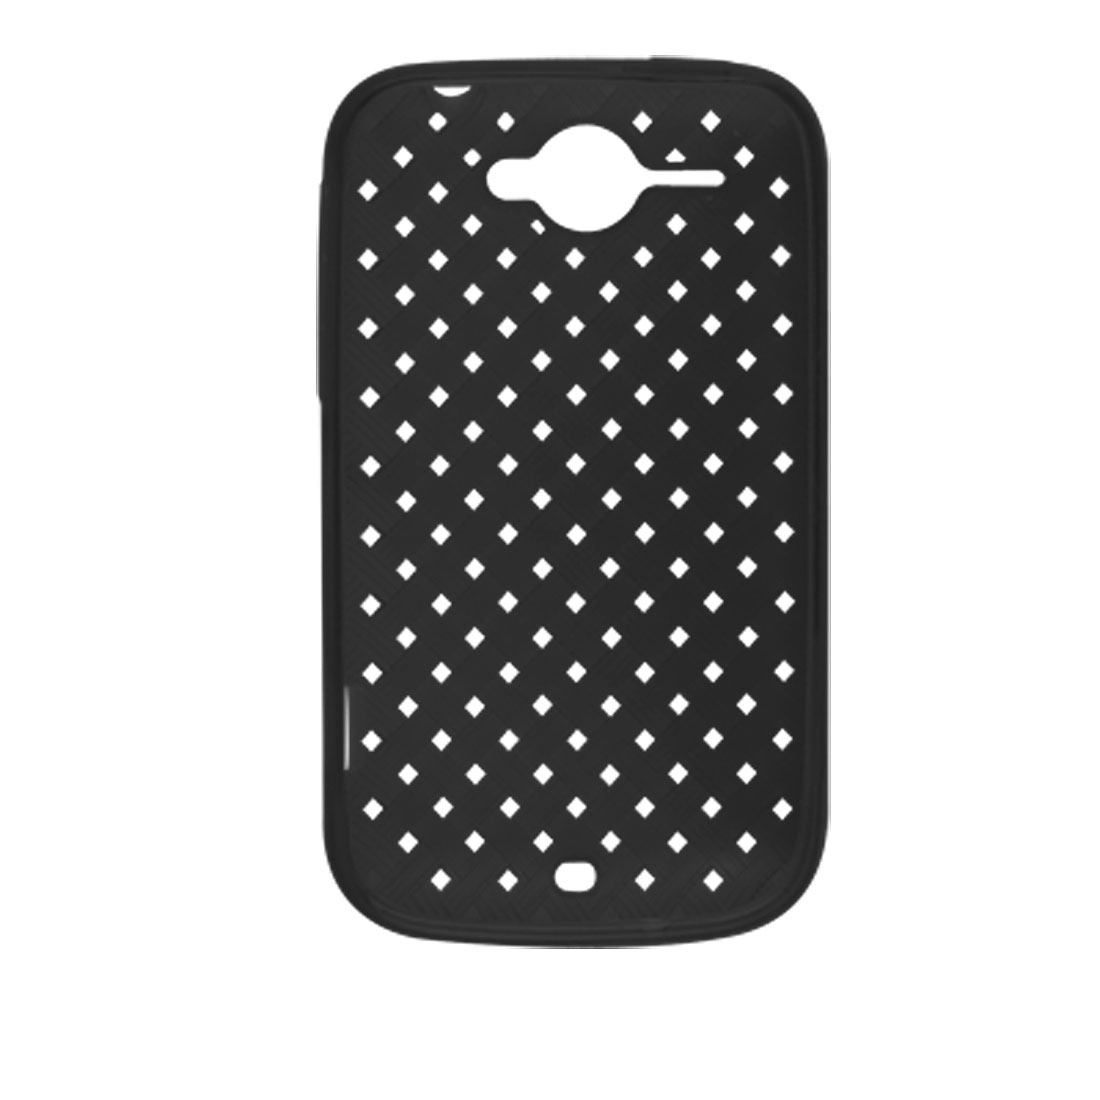 Black Rough Woven Pattern Cover Shield for HTC Wildfire G8